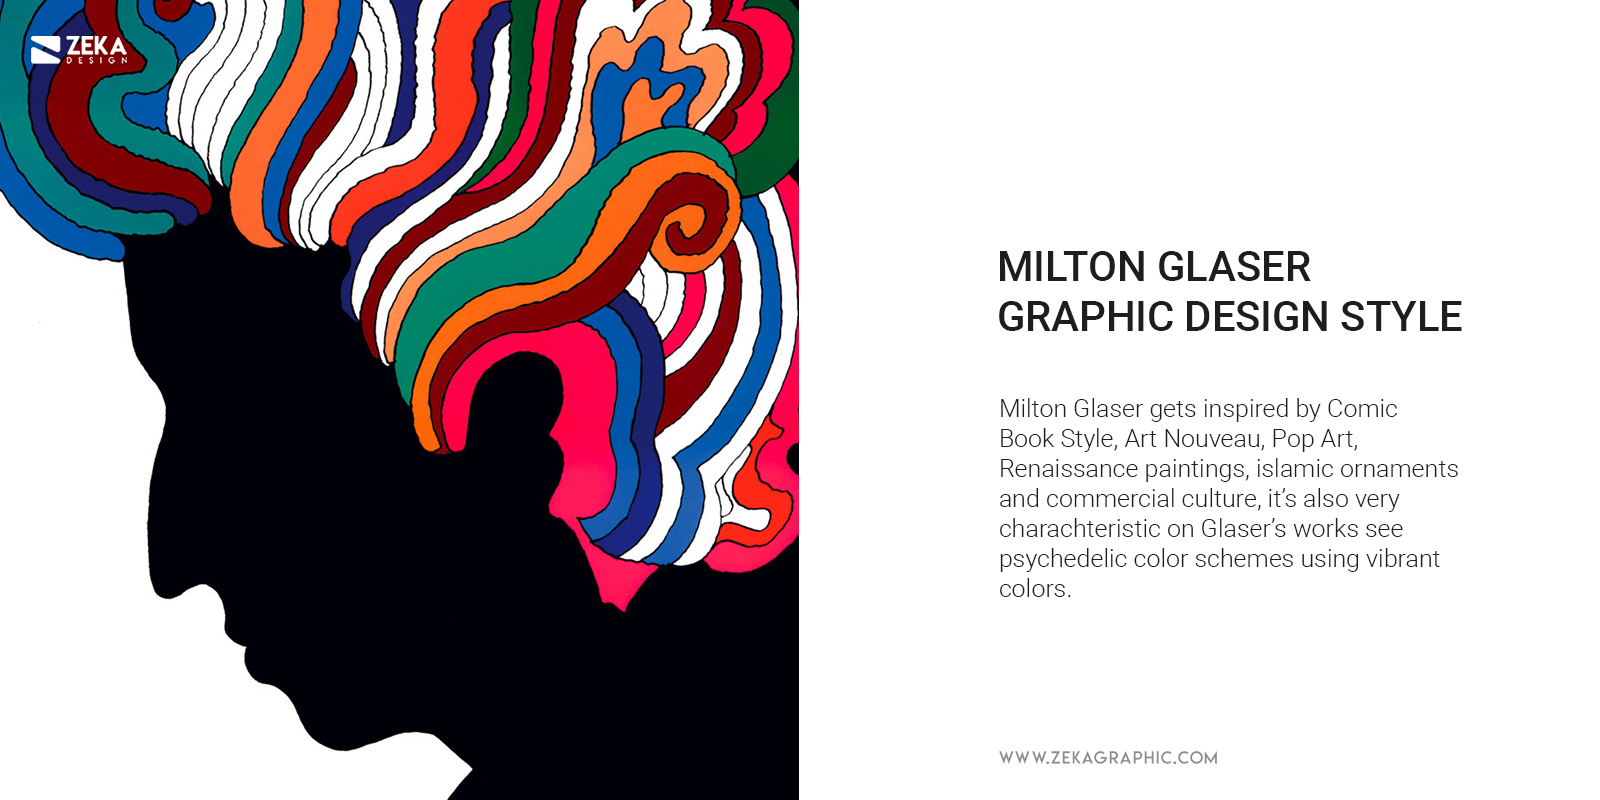 Milton Glaser Graphic Design Style and Inspiration